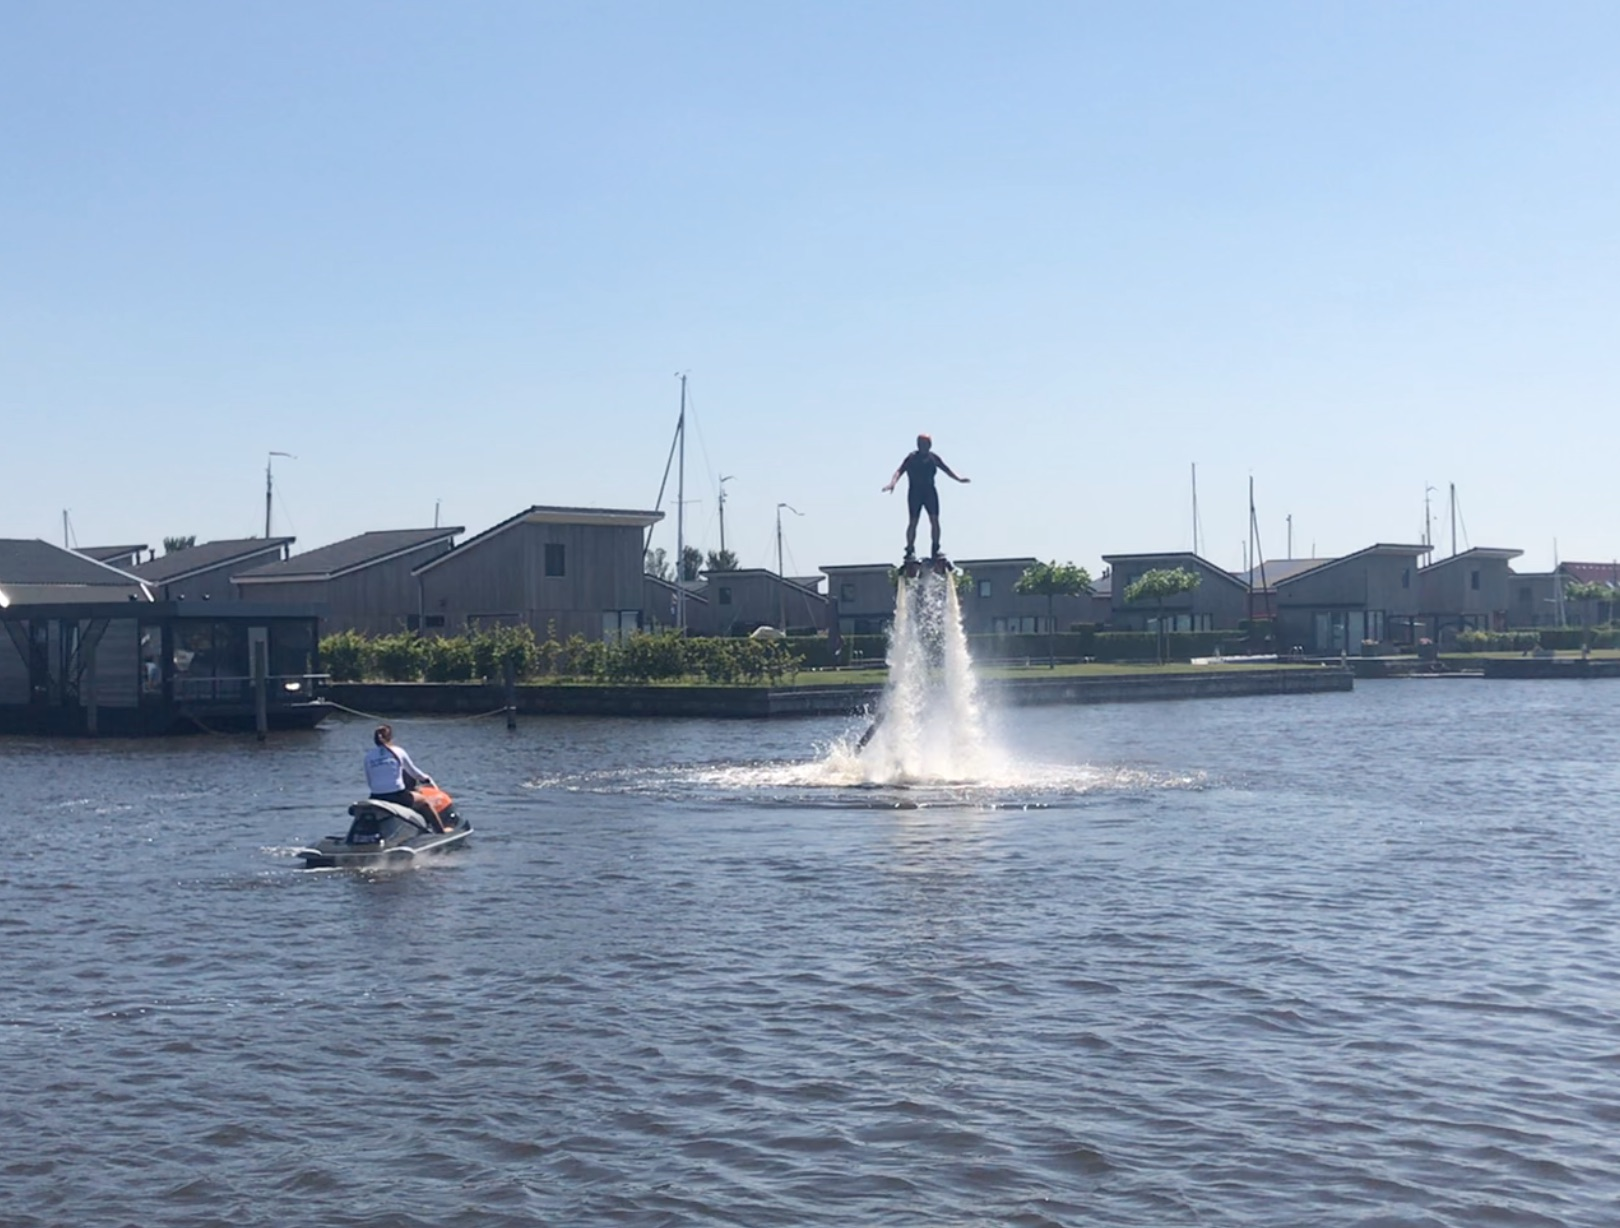 Flyboarding during the Luminis Amsterdam Social